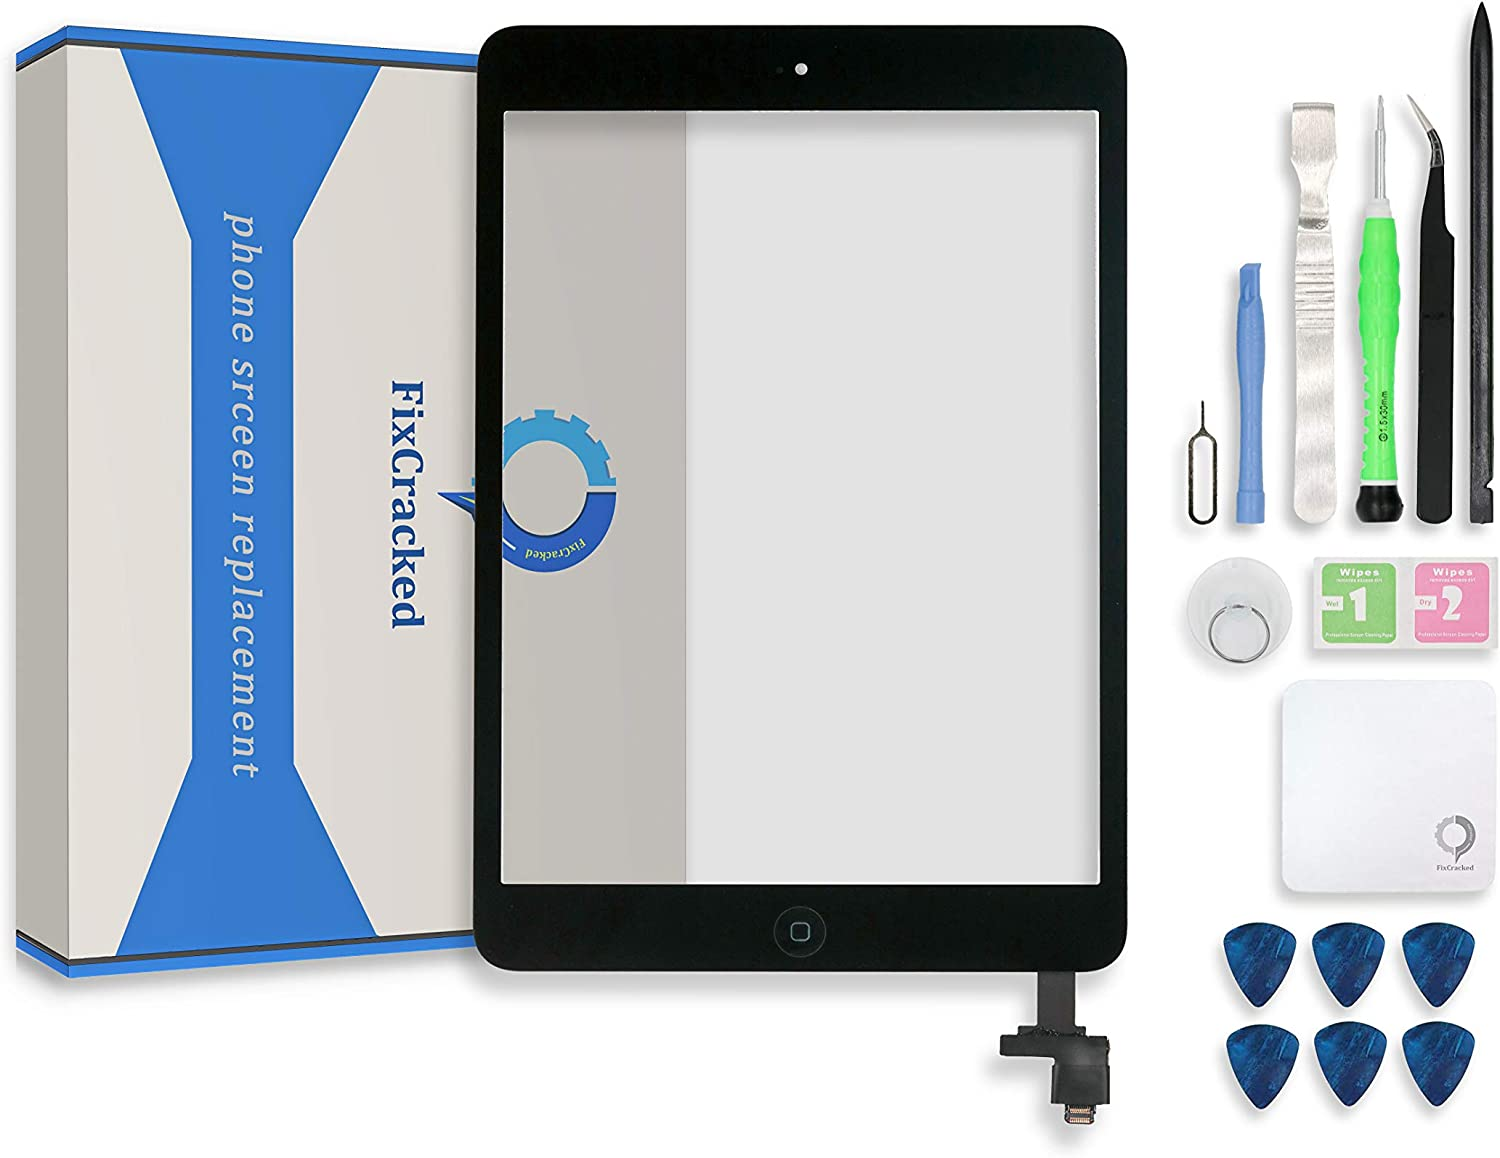 Fixcracked Touch Screen Replacement Parts Digitizer Glass Assembly for Ipad mini & mini 2 + Professional Tool Kit (black)